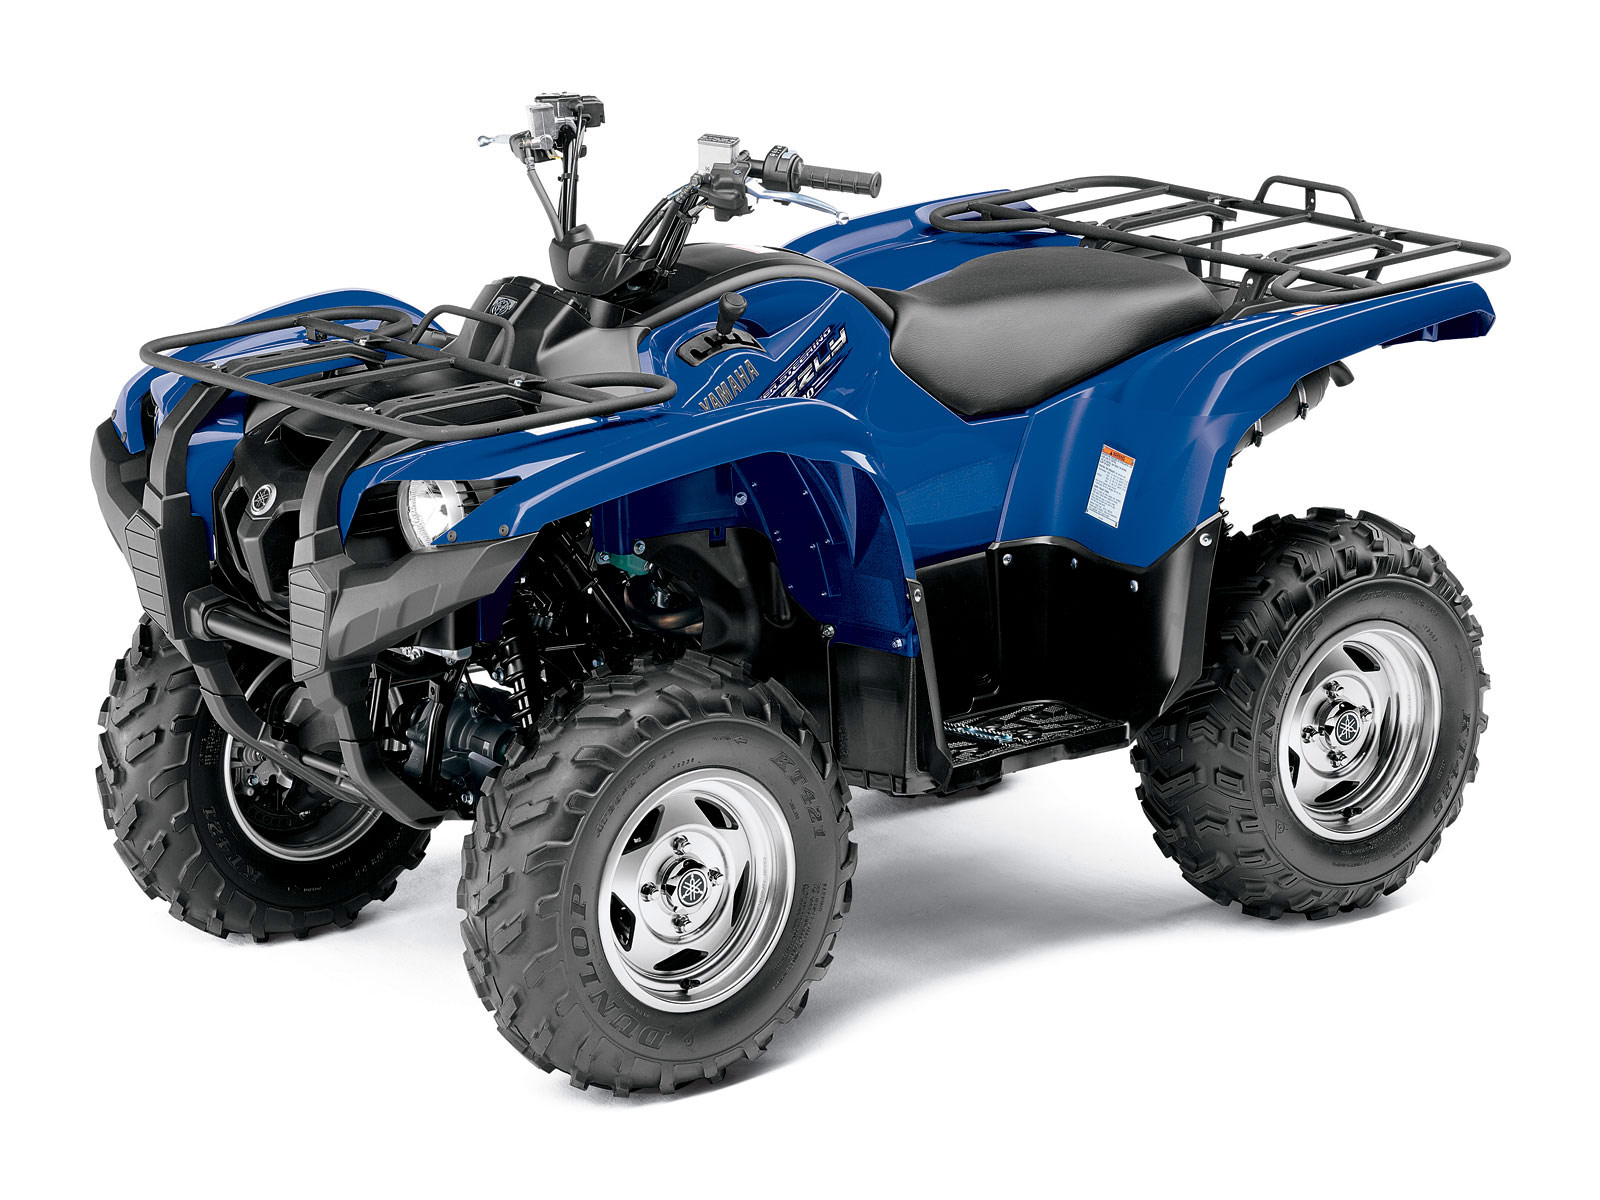 yamaha atv pictures 2011 grizzly 700 fi 4x4 eps